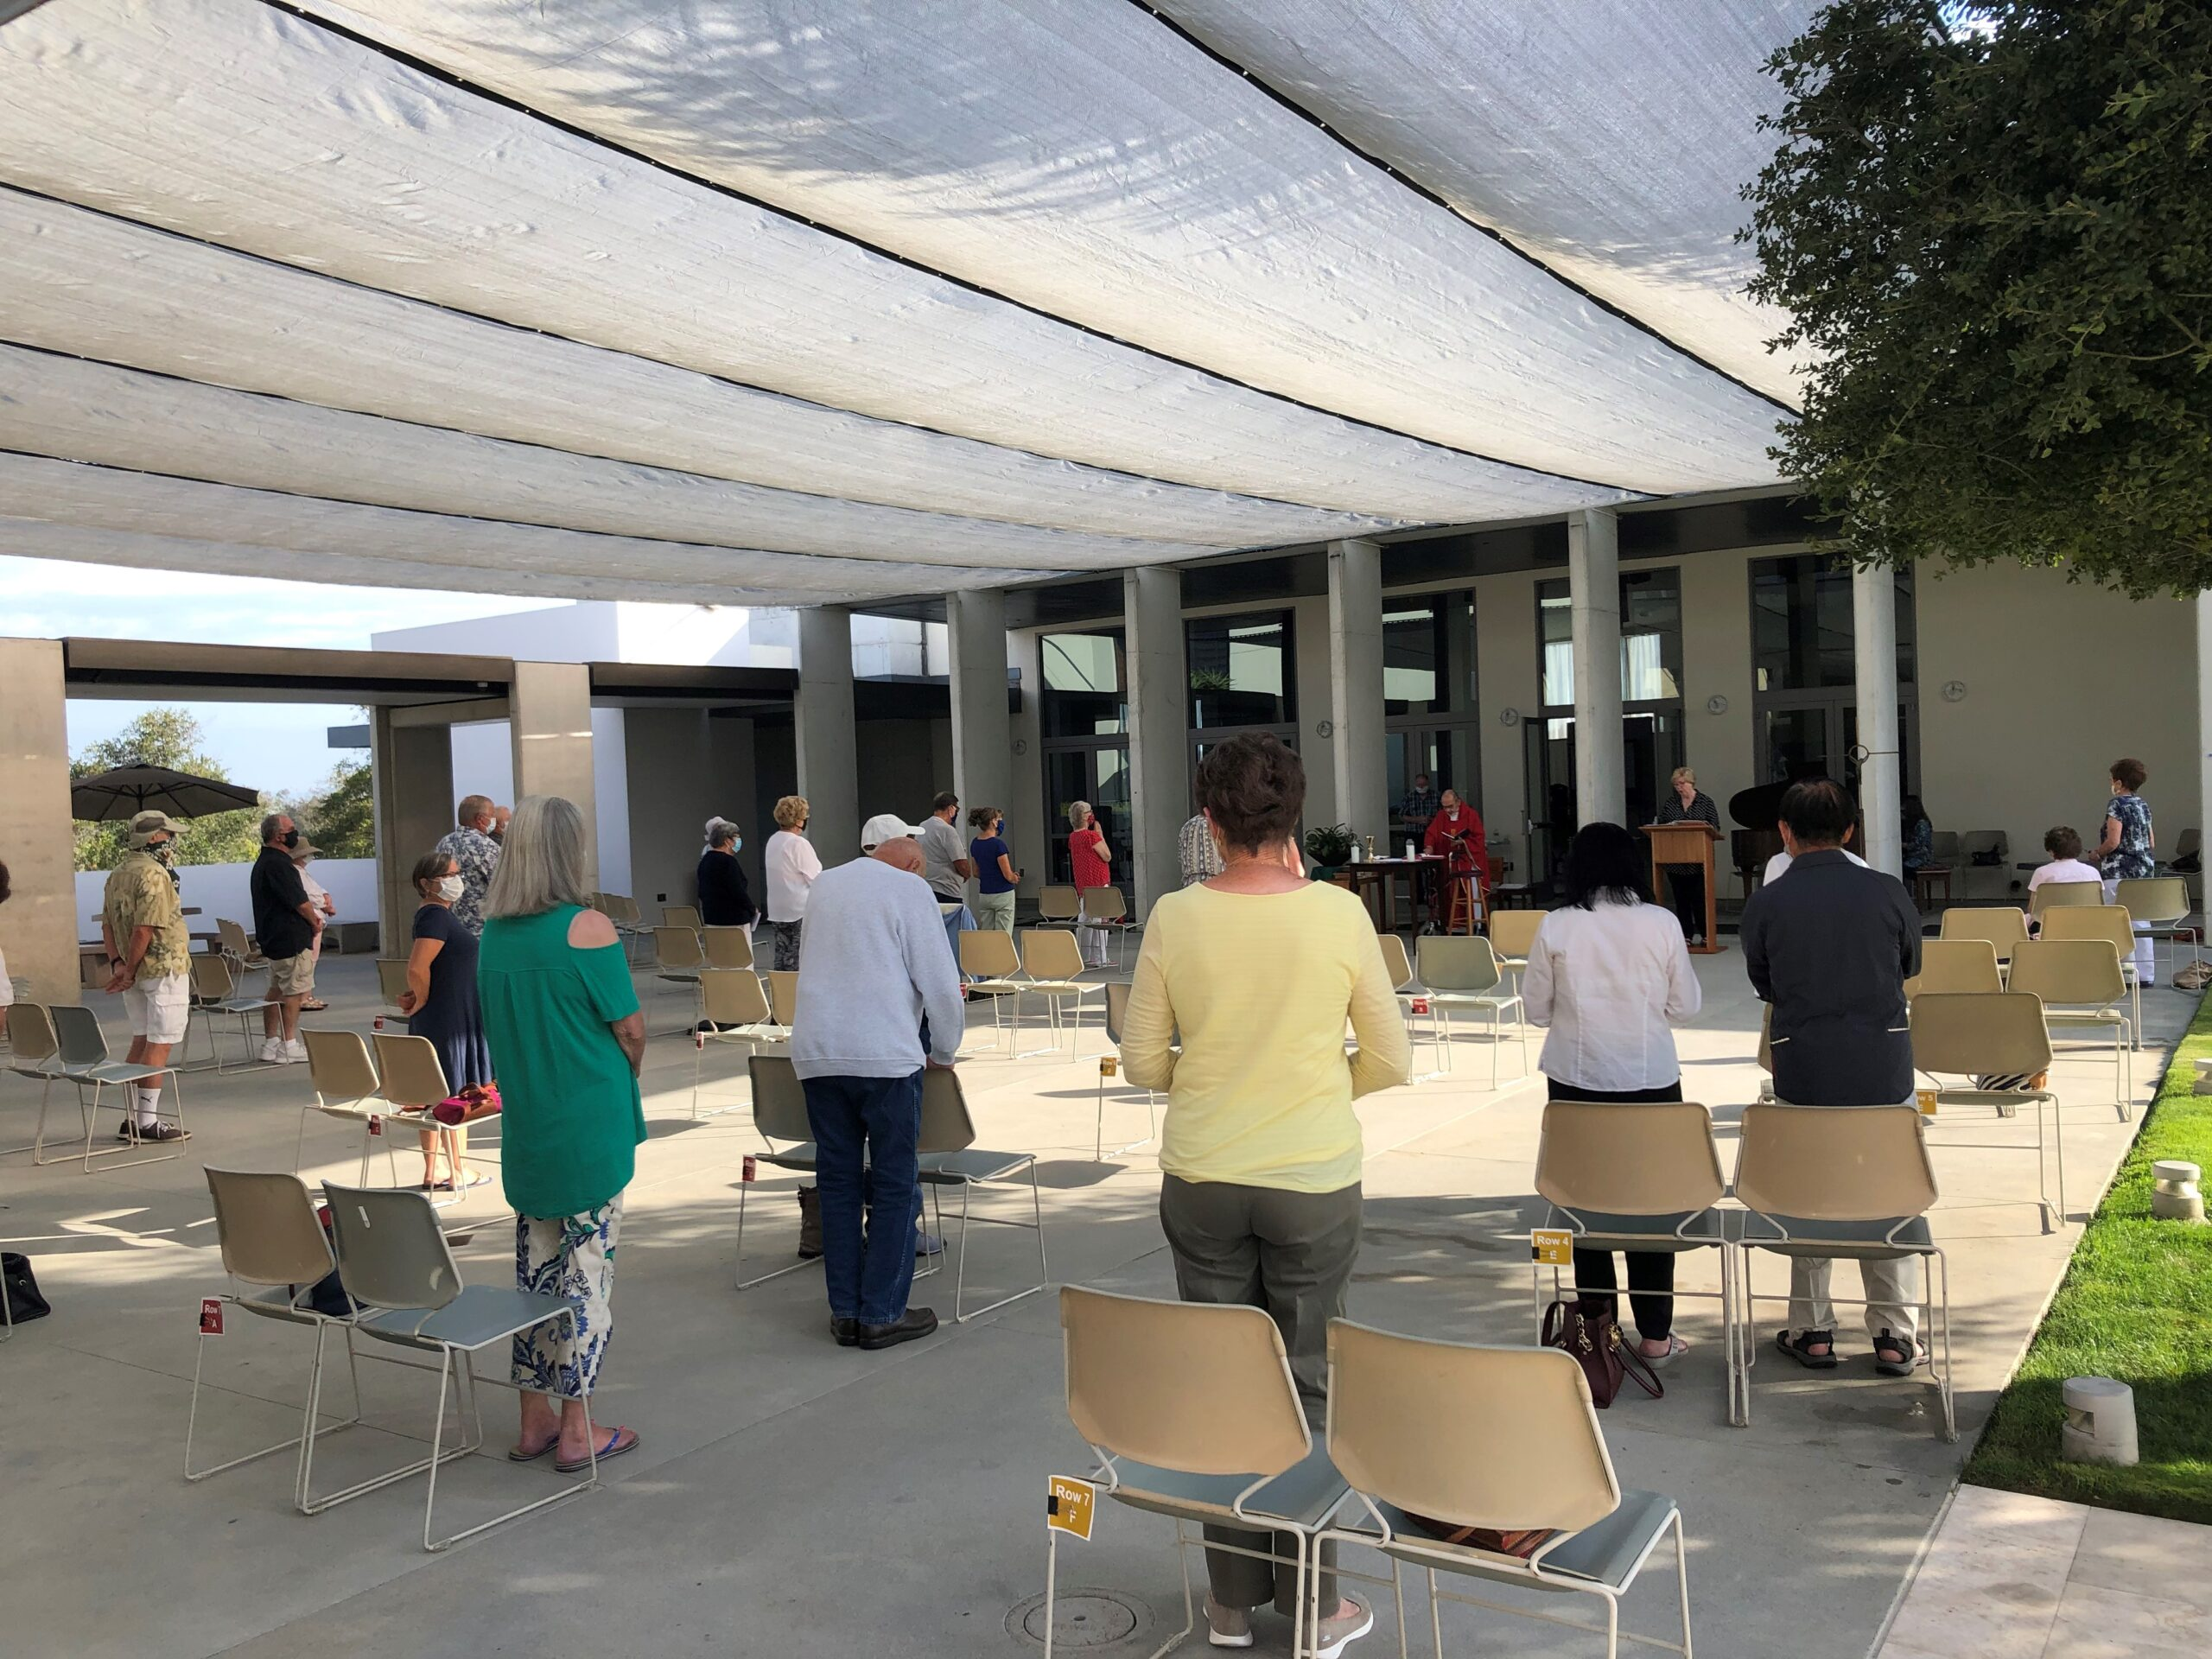 Daily Mass on the Plaza